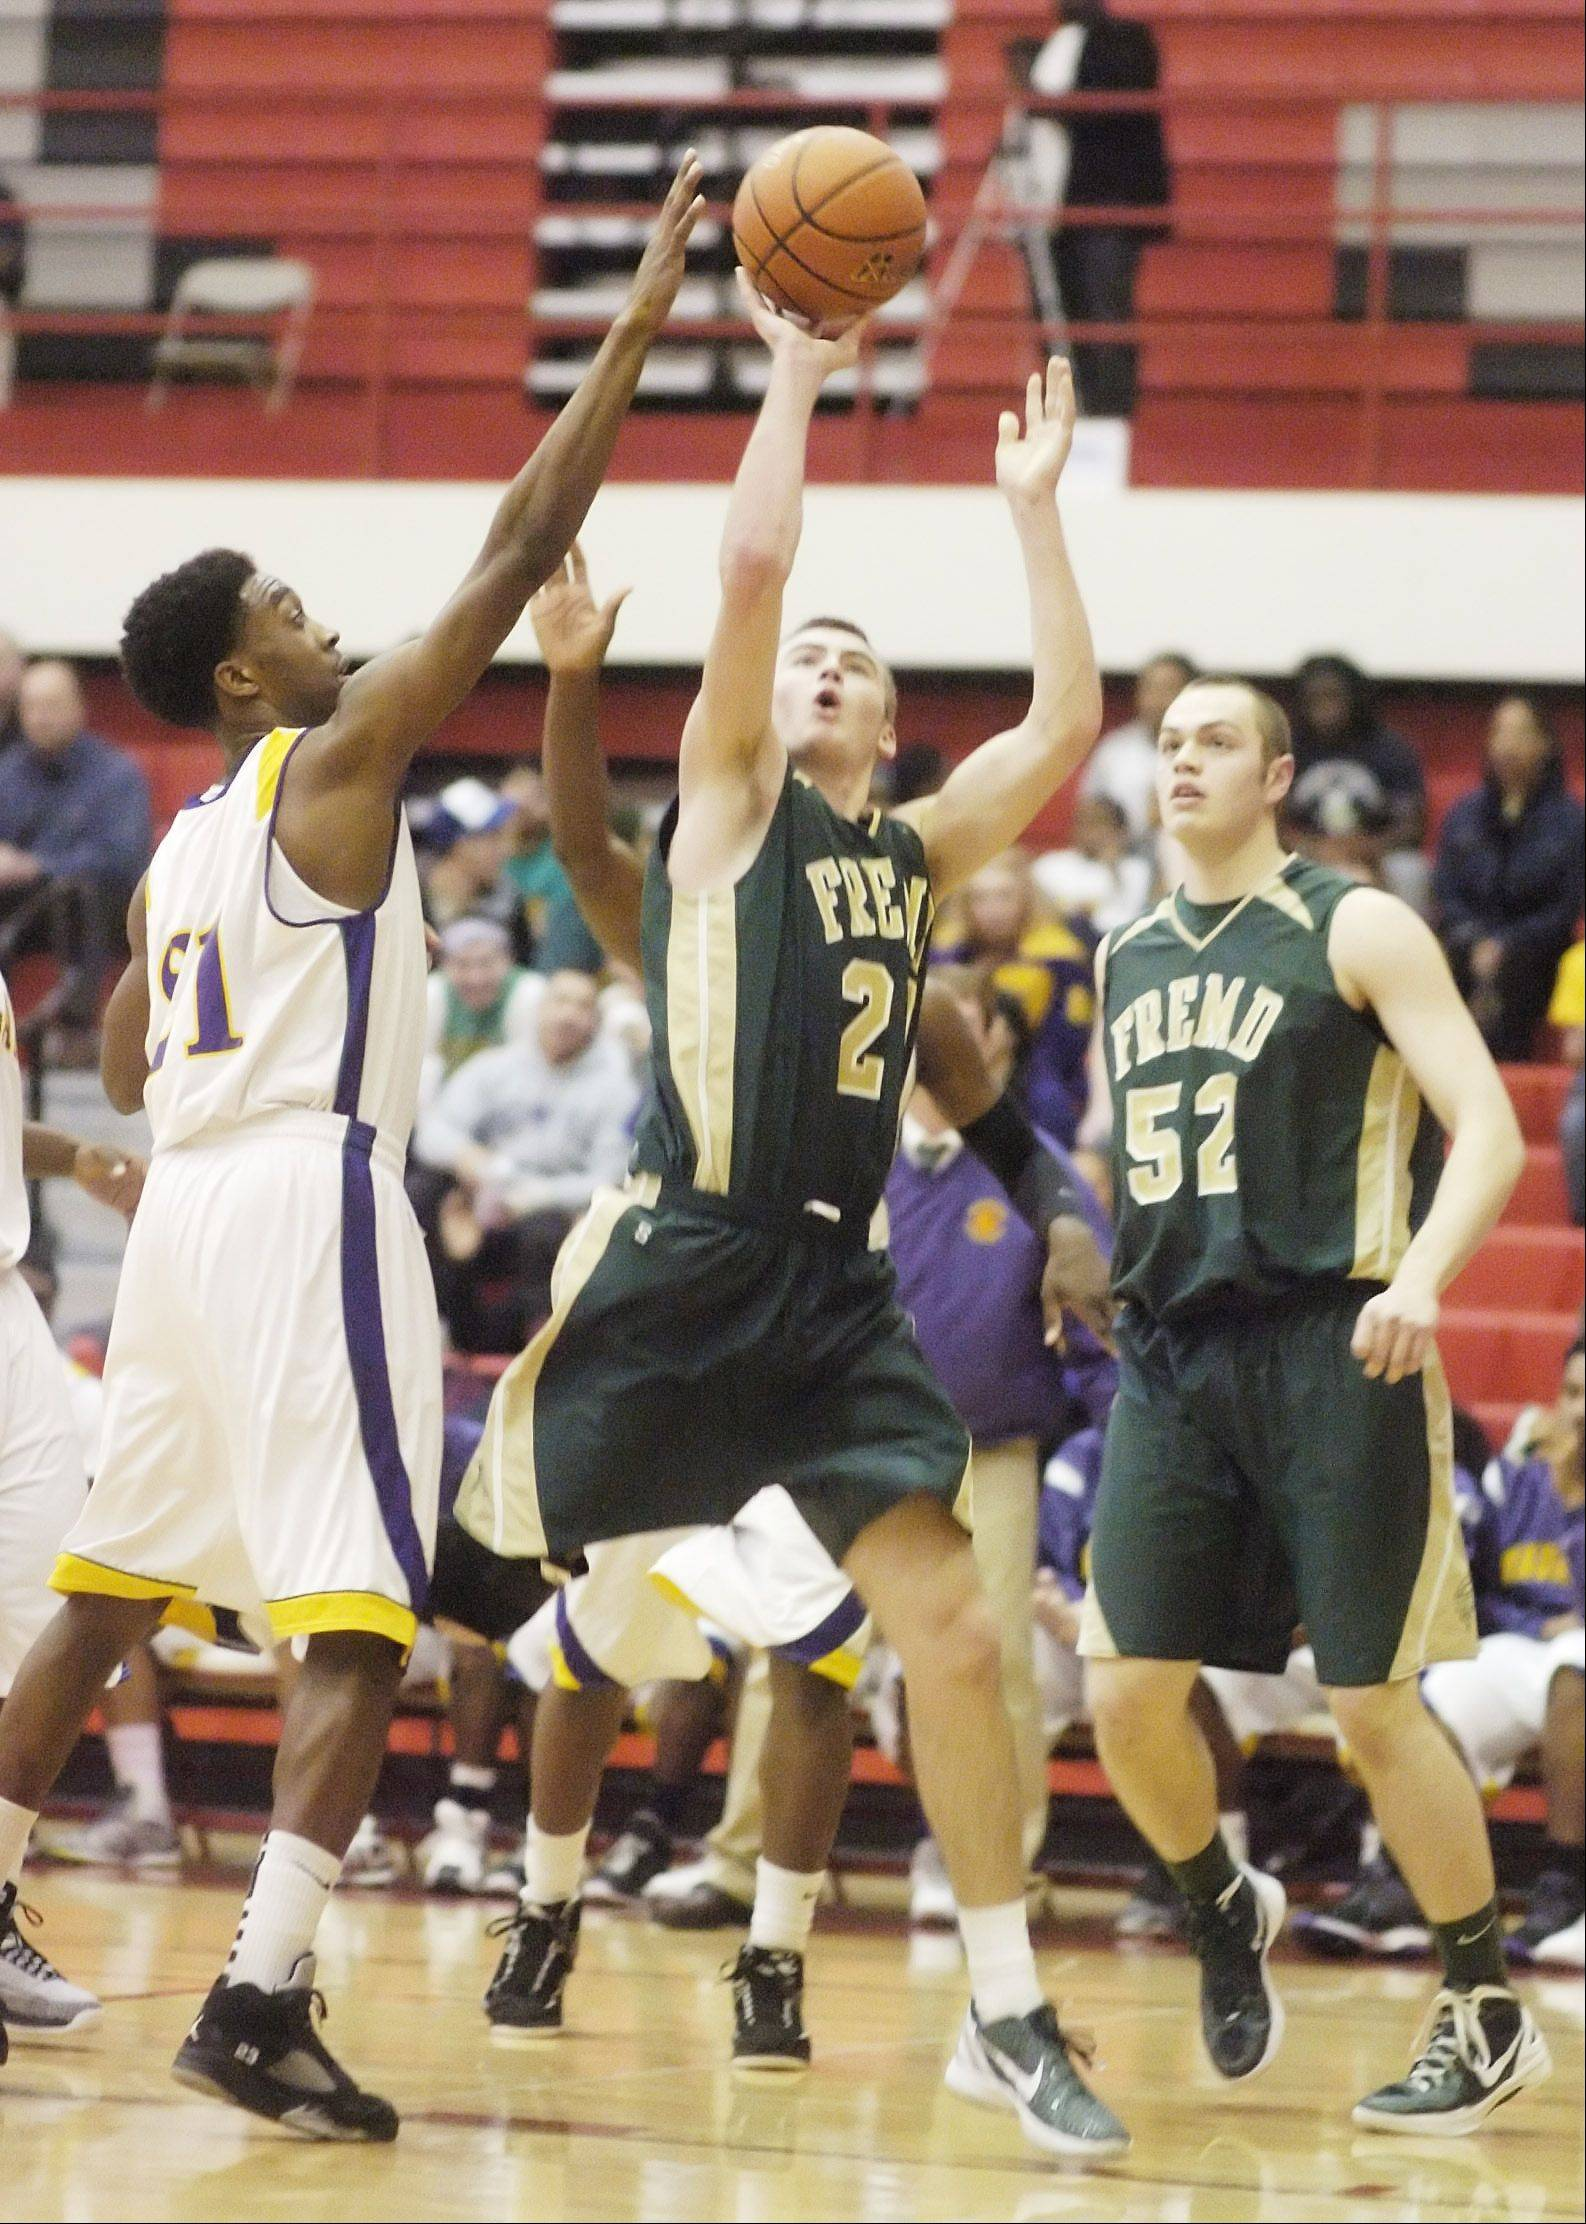 Images from the Waukegan vs. Fremd boys regional semifinal basketball game in Palatine on Tuesday, February 28th.